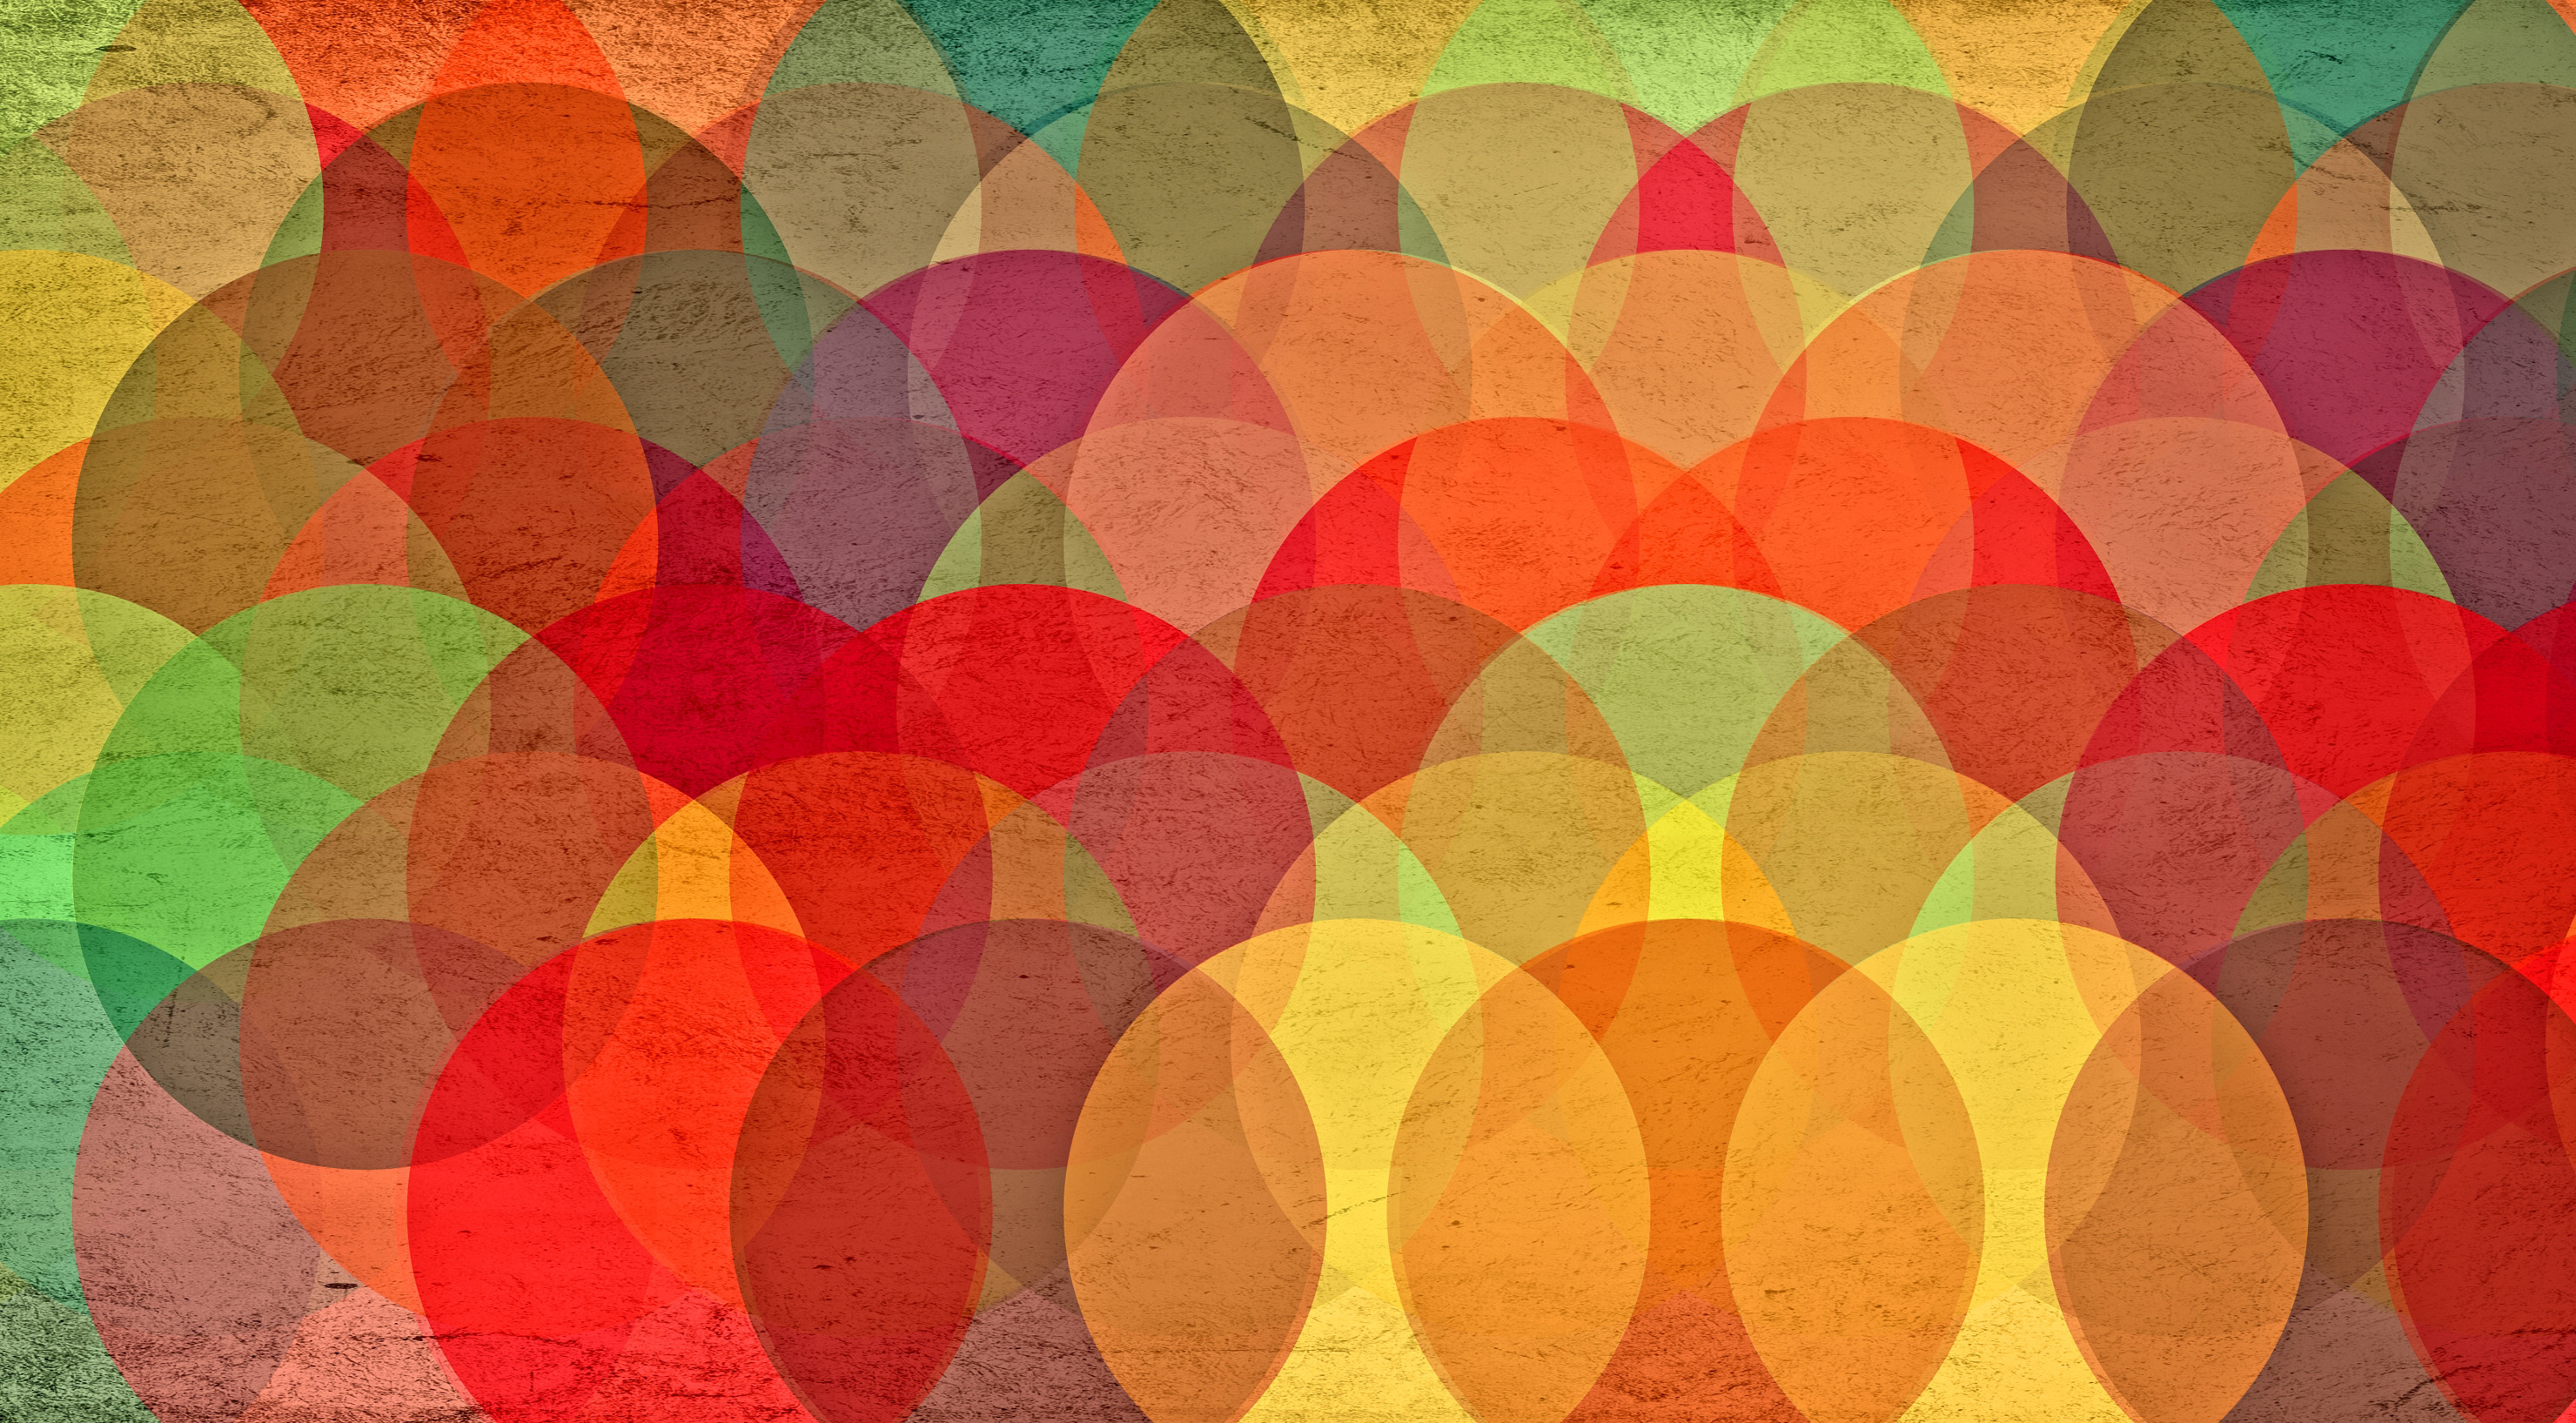 Colorful circles on grunge background - abstract pattern photo